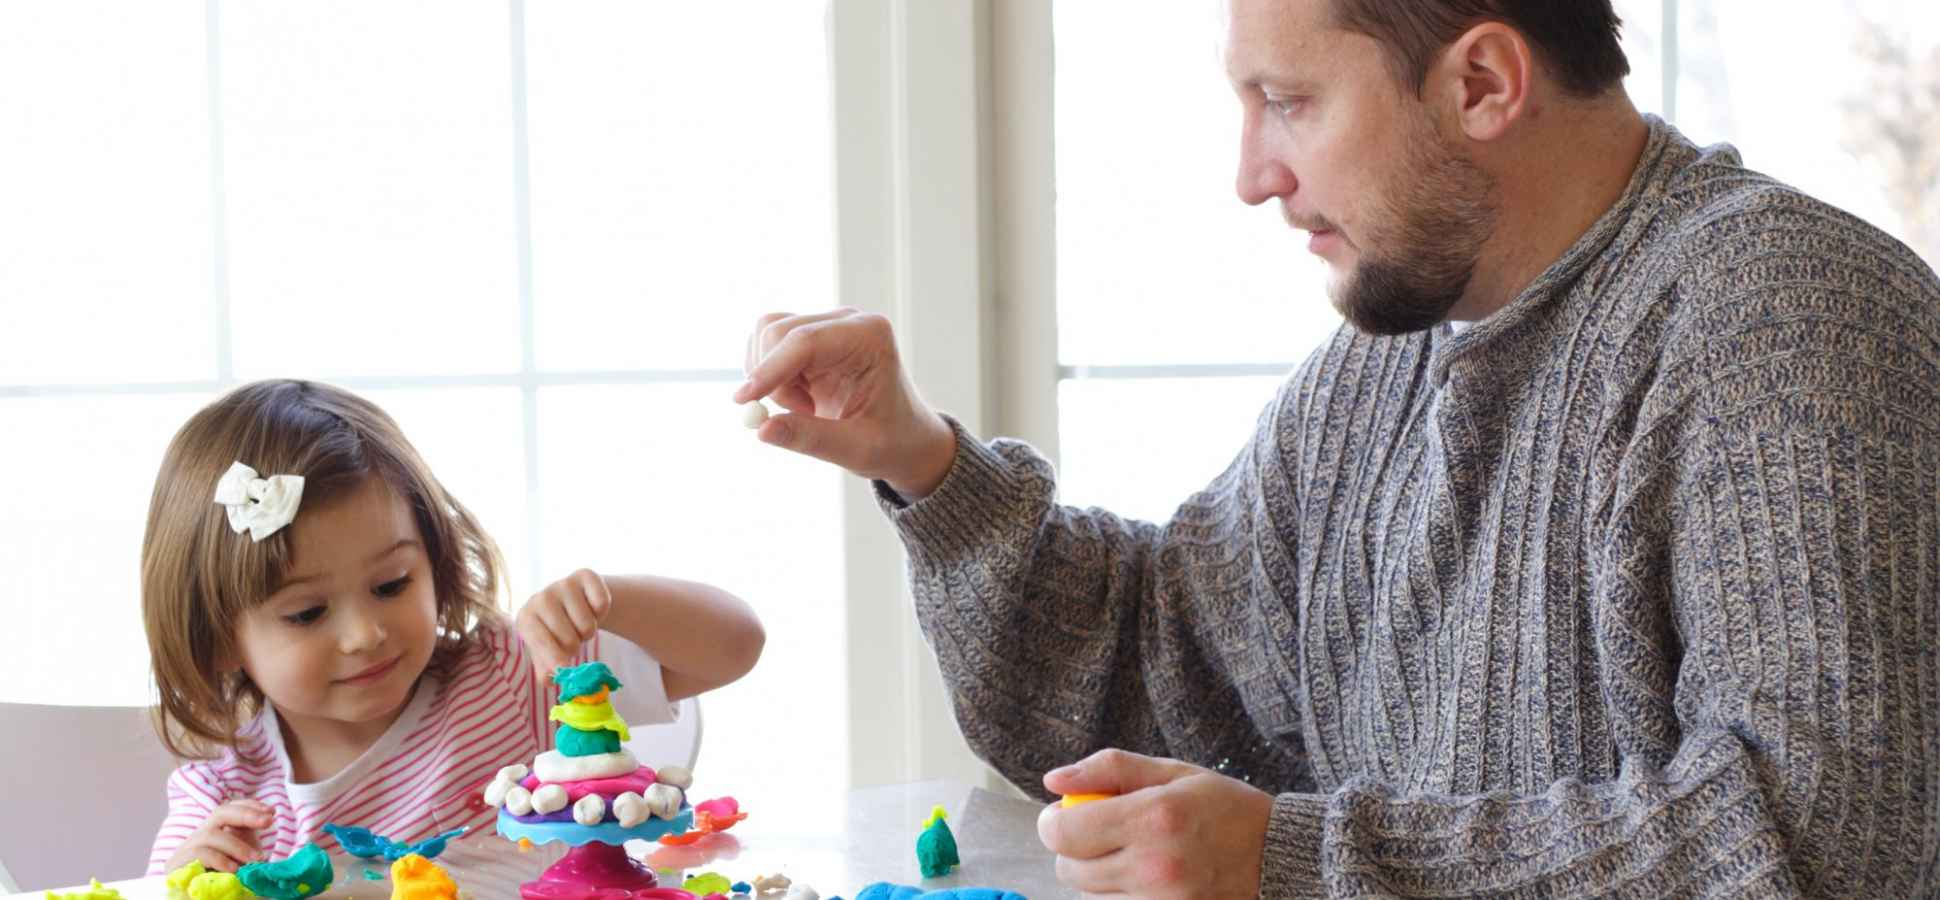 65 Percent of Kids Will Have Jobs That Haven't Been Invented Yet. These Toys Can Help